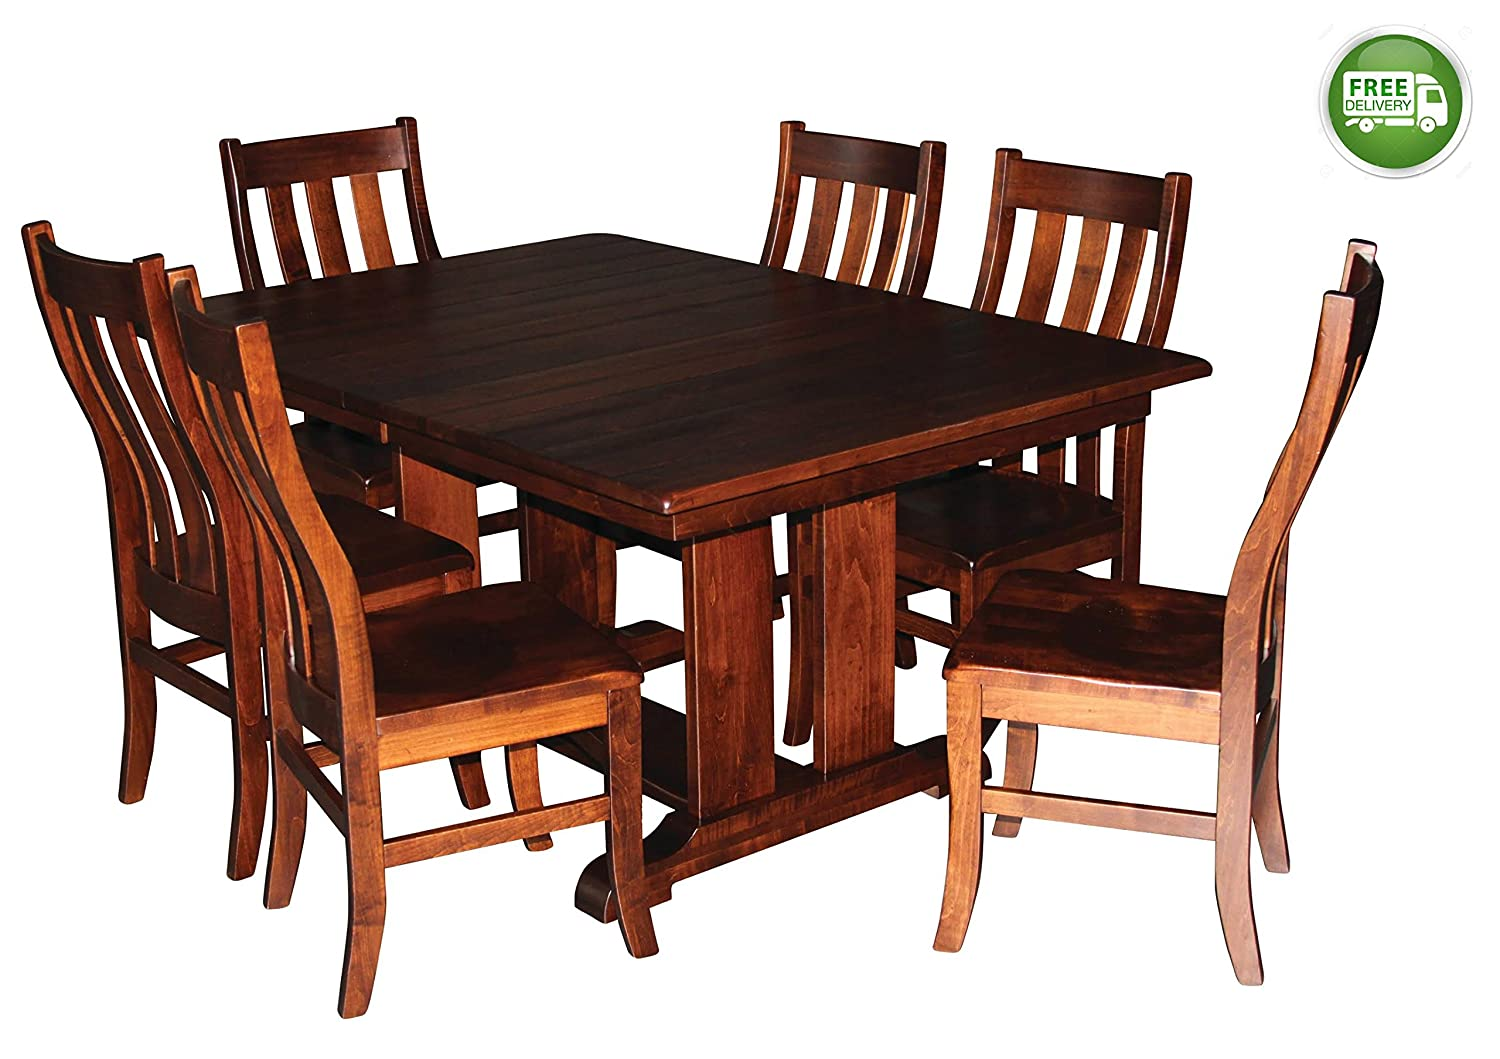 amazon com aspen tree interiors solid wood heirloom 9 piece amazon com aspen tree interiors solid wood heirloom 9 piece dining room kitchen table set get ready for the holidays and generations to come made in